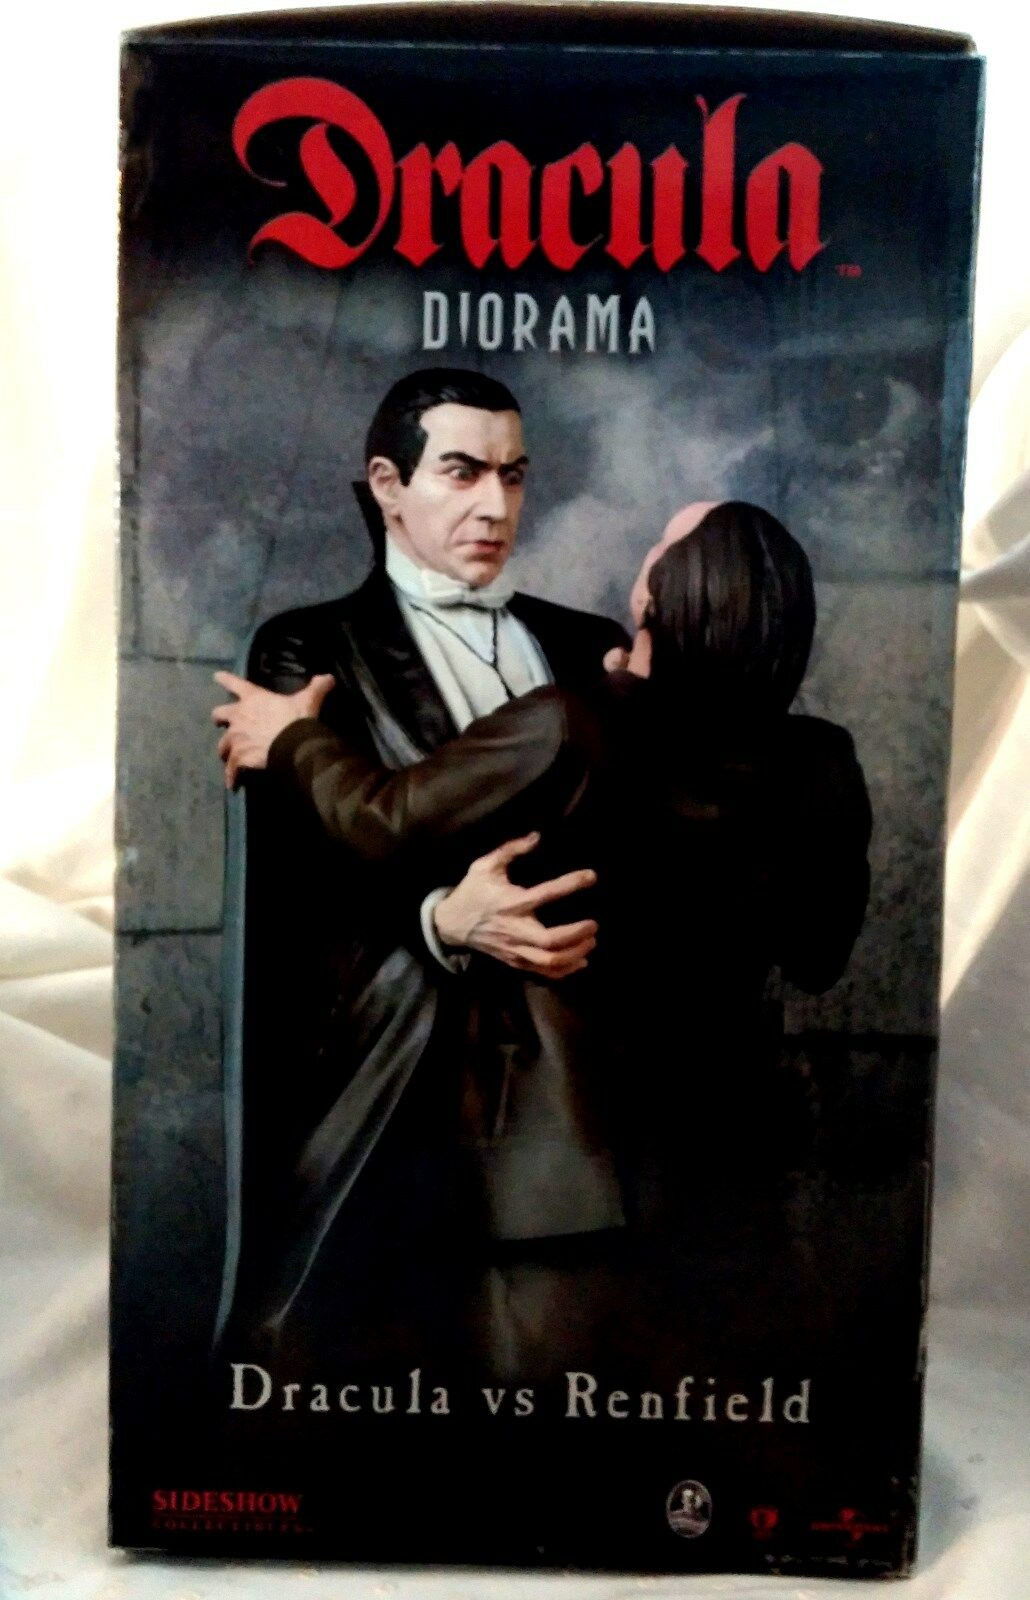 Dracula vs renfield diorama, zirkus, limited edition